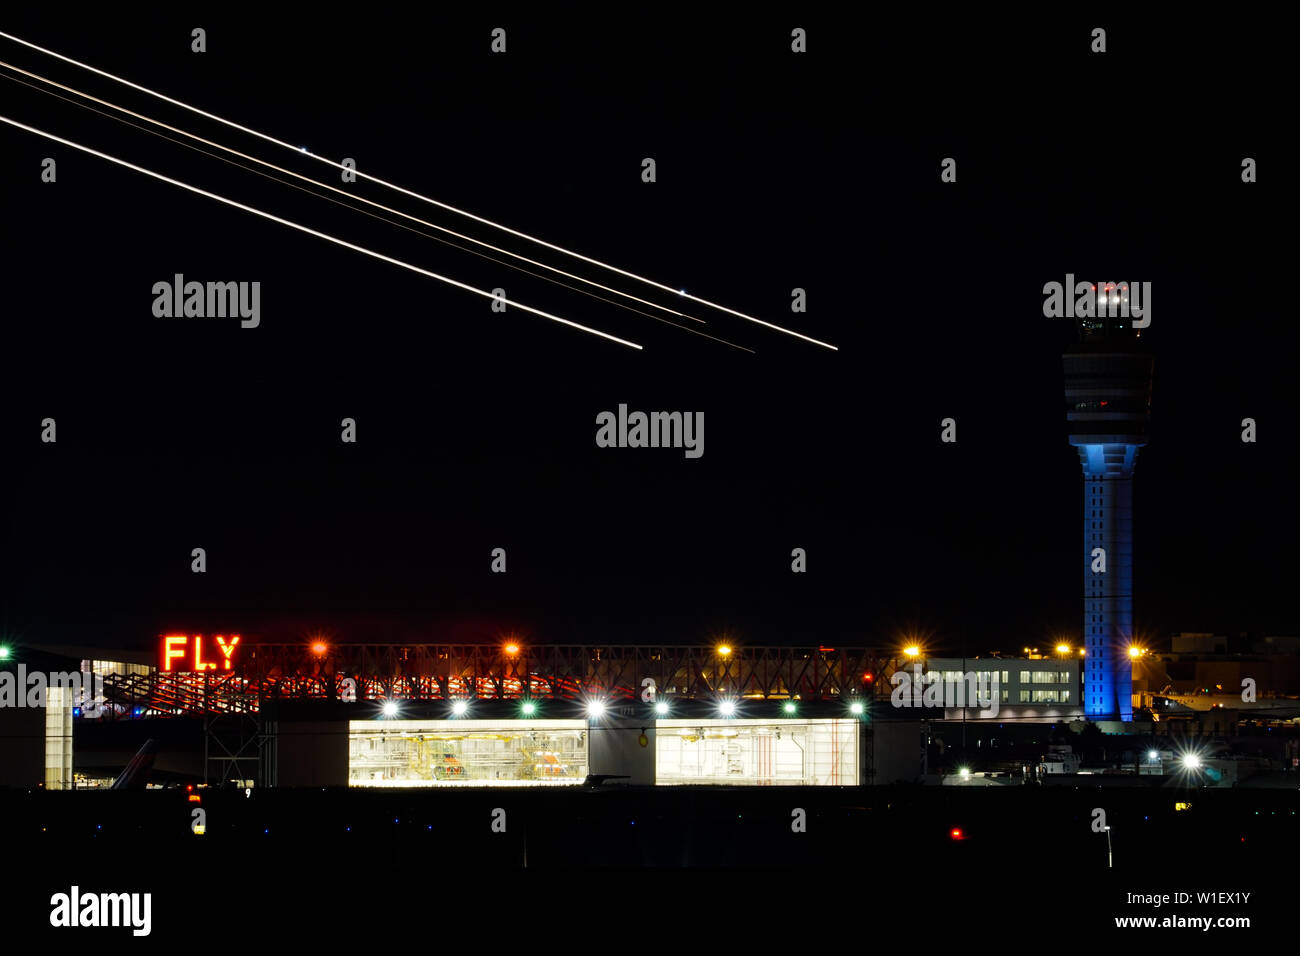 Atlanta, GA / USA : 27. May, 2015 - nightime view of the Atlanta international airport with air traffic control and streaks of planes taking off over Stock Photo